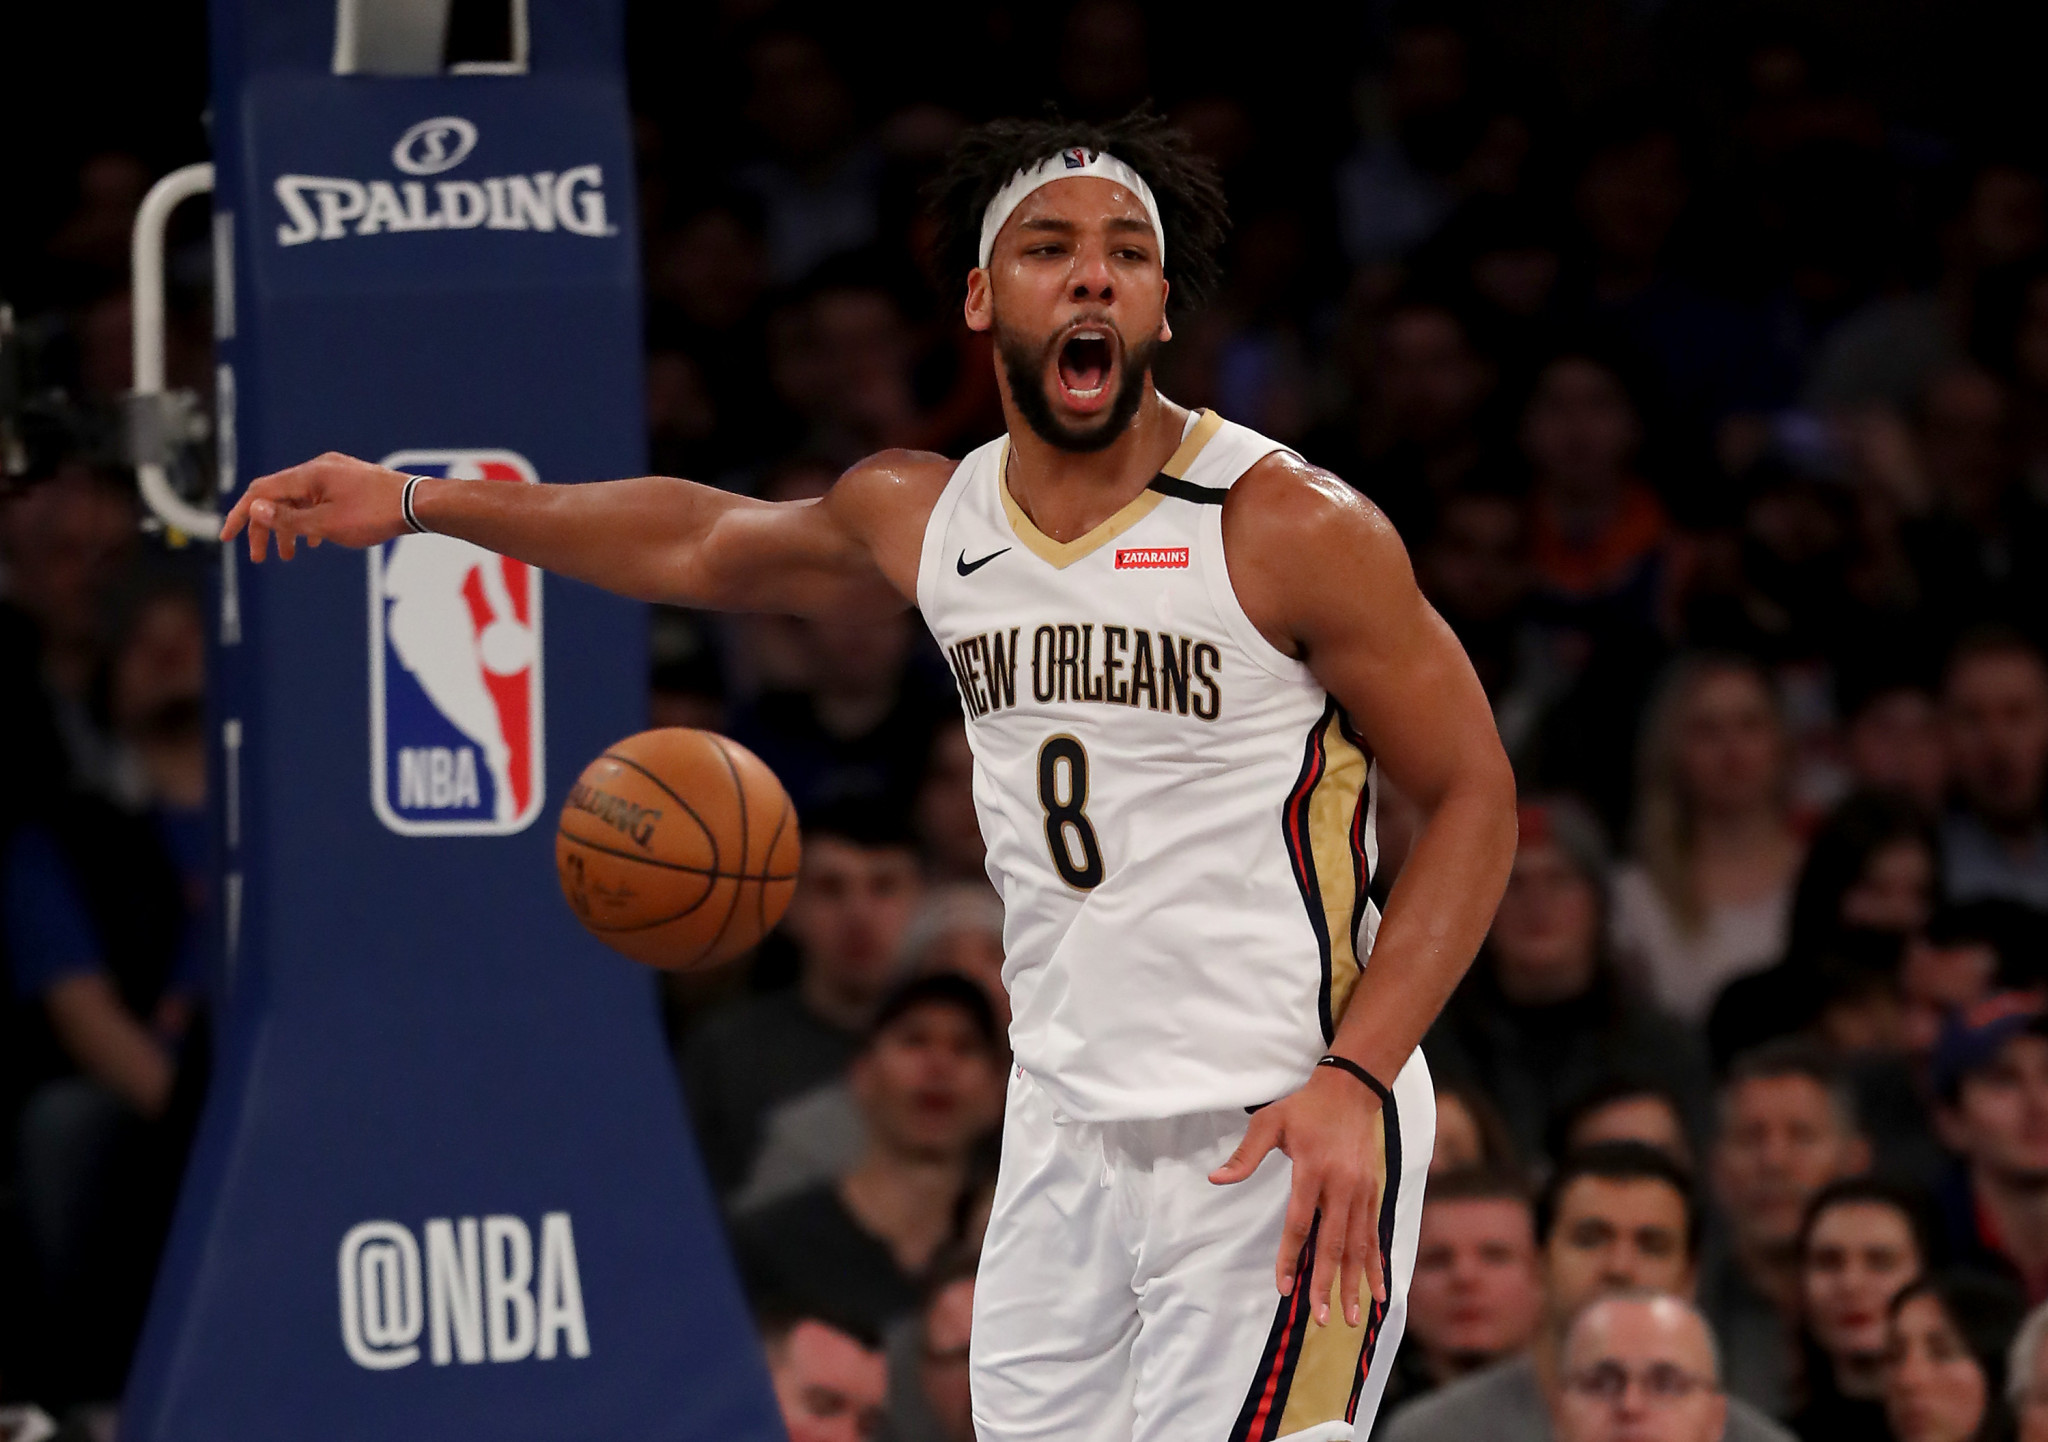 New Orleans Pelicans Jahlil Okafor looks set to be in Nigeria colours come Tokyo 2020 after declaring for the land of his grandfather ©Getty Images